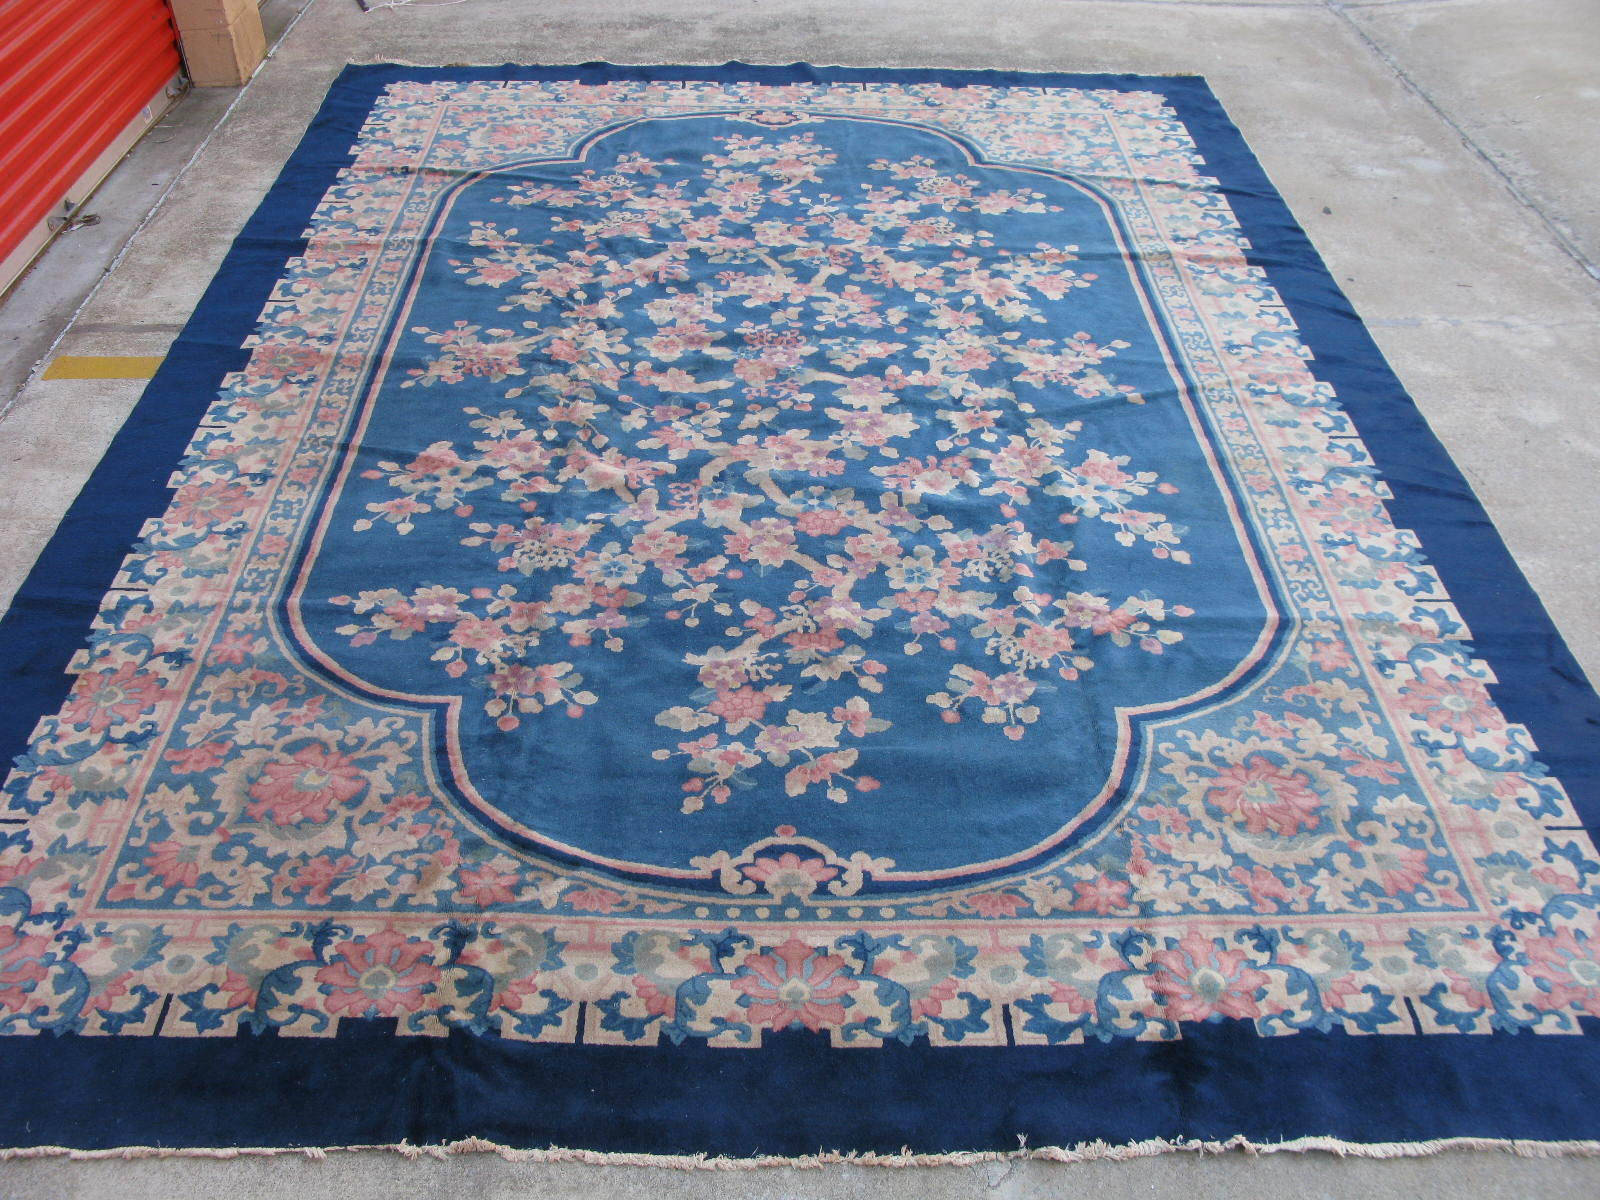 Chinese Hand Knotted Wool Rugs.11 X 15 8 Palace Size Hand Knotted Wool Antique Chinese Art Deco Fette Blue Rug 12980485